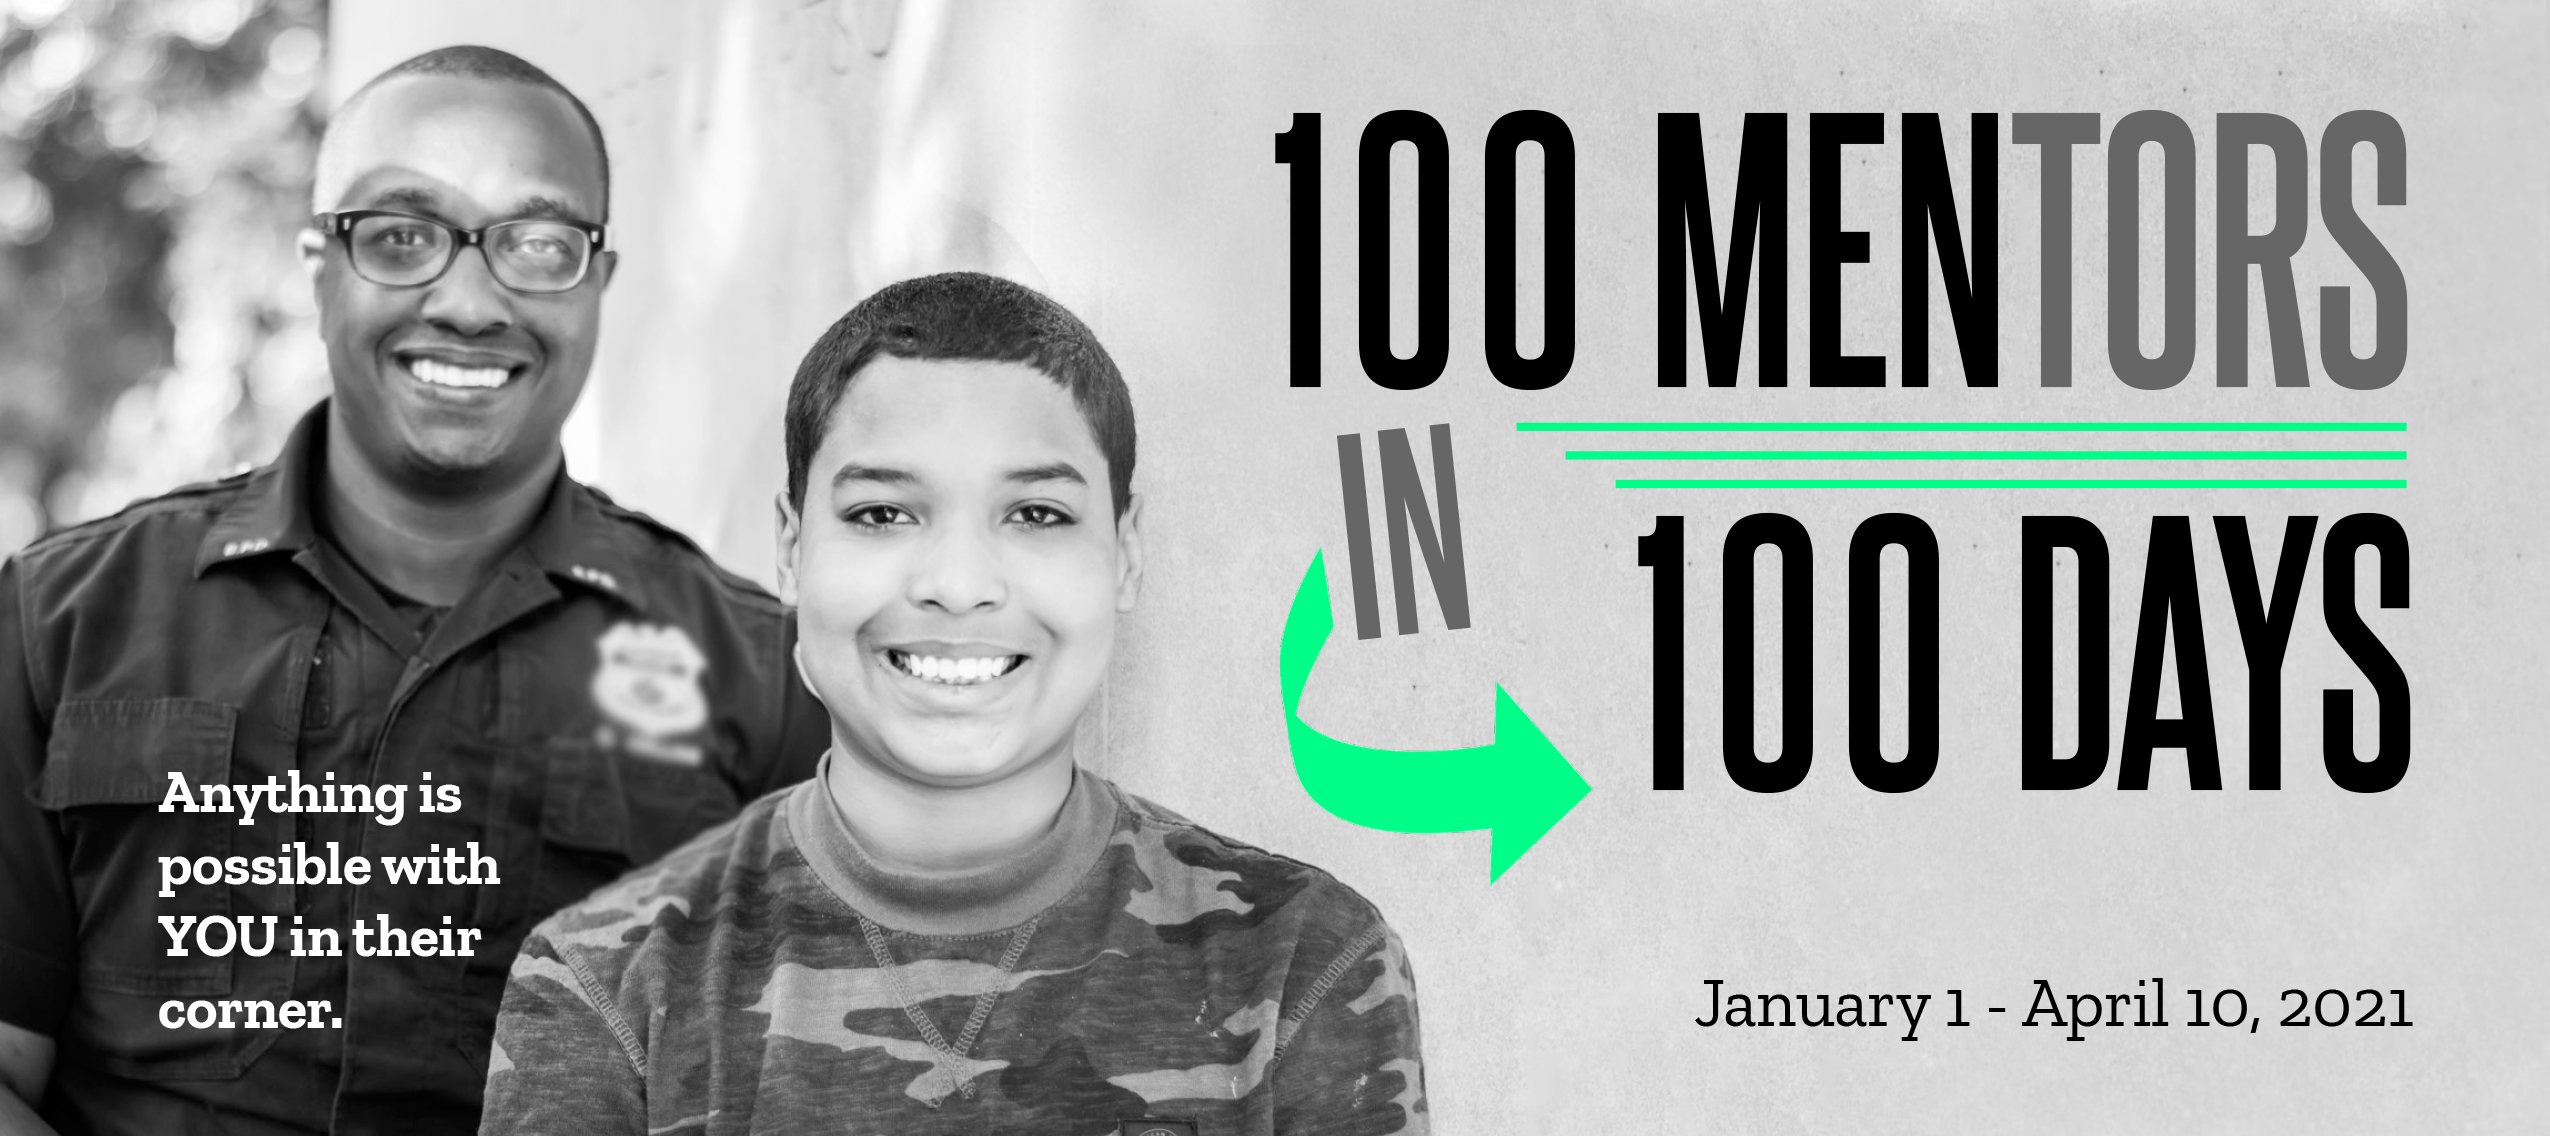 Big Brothers Big Sisters 100 Mentors in 100 days campaign.